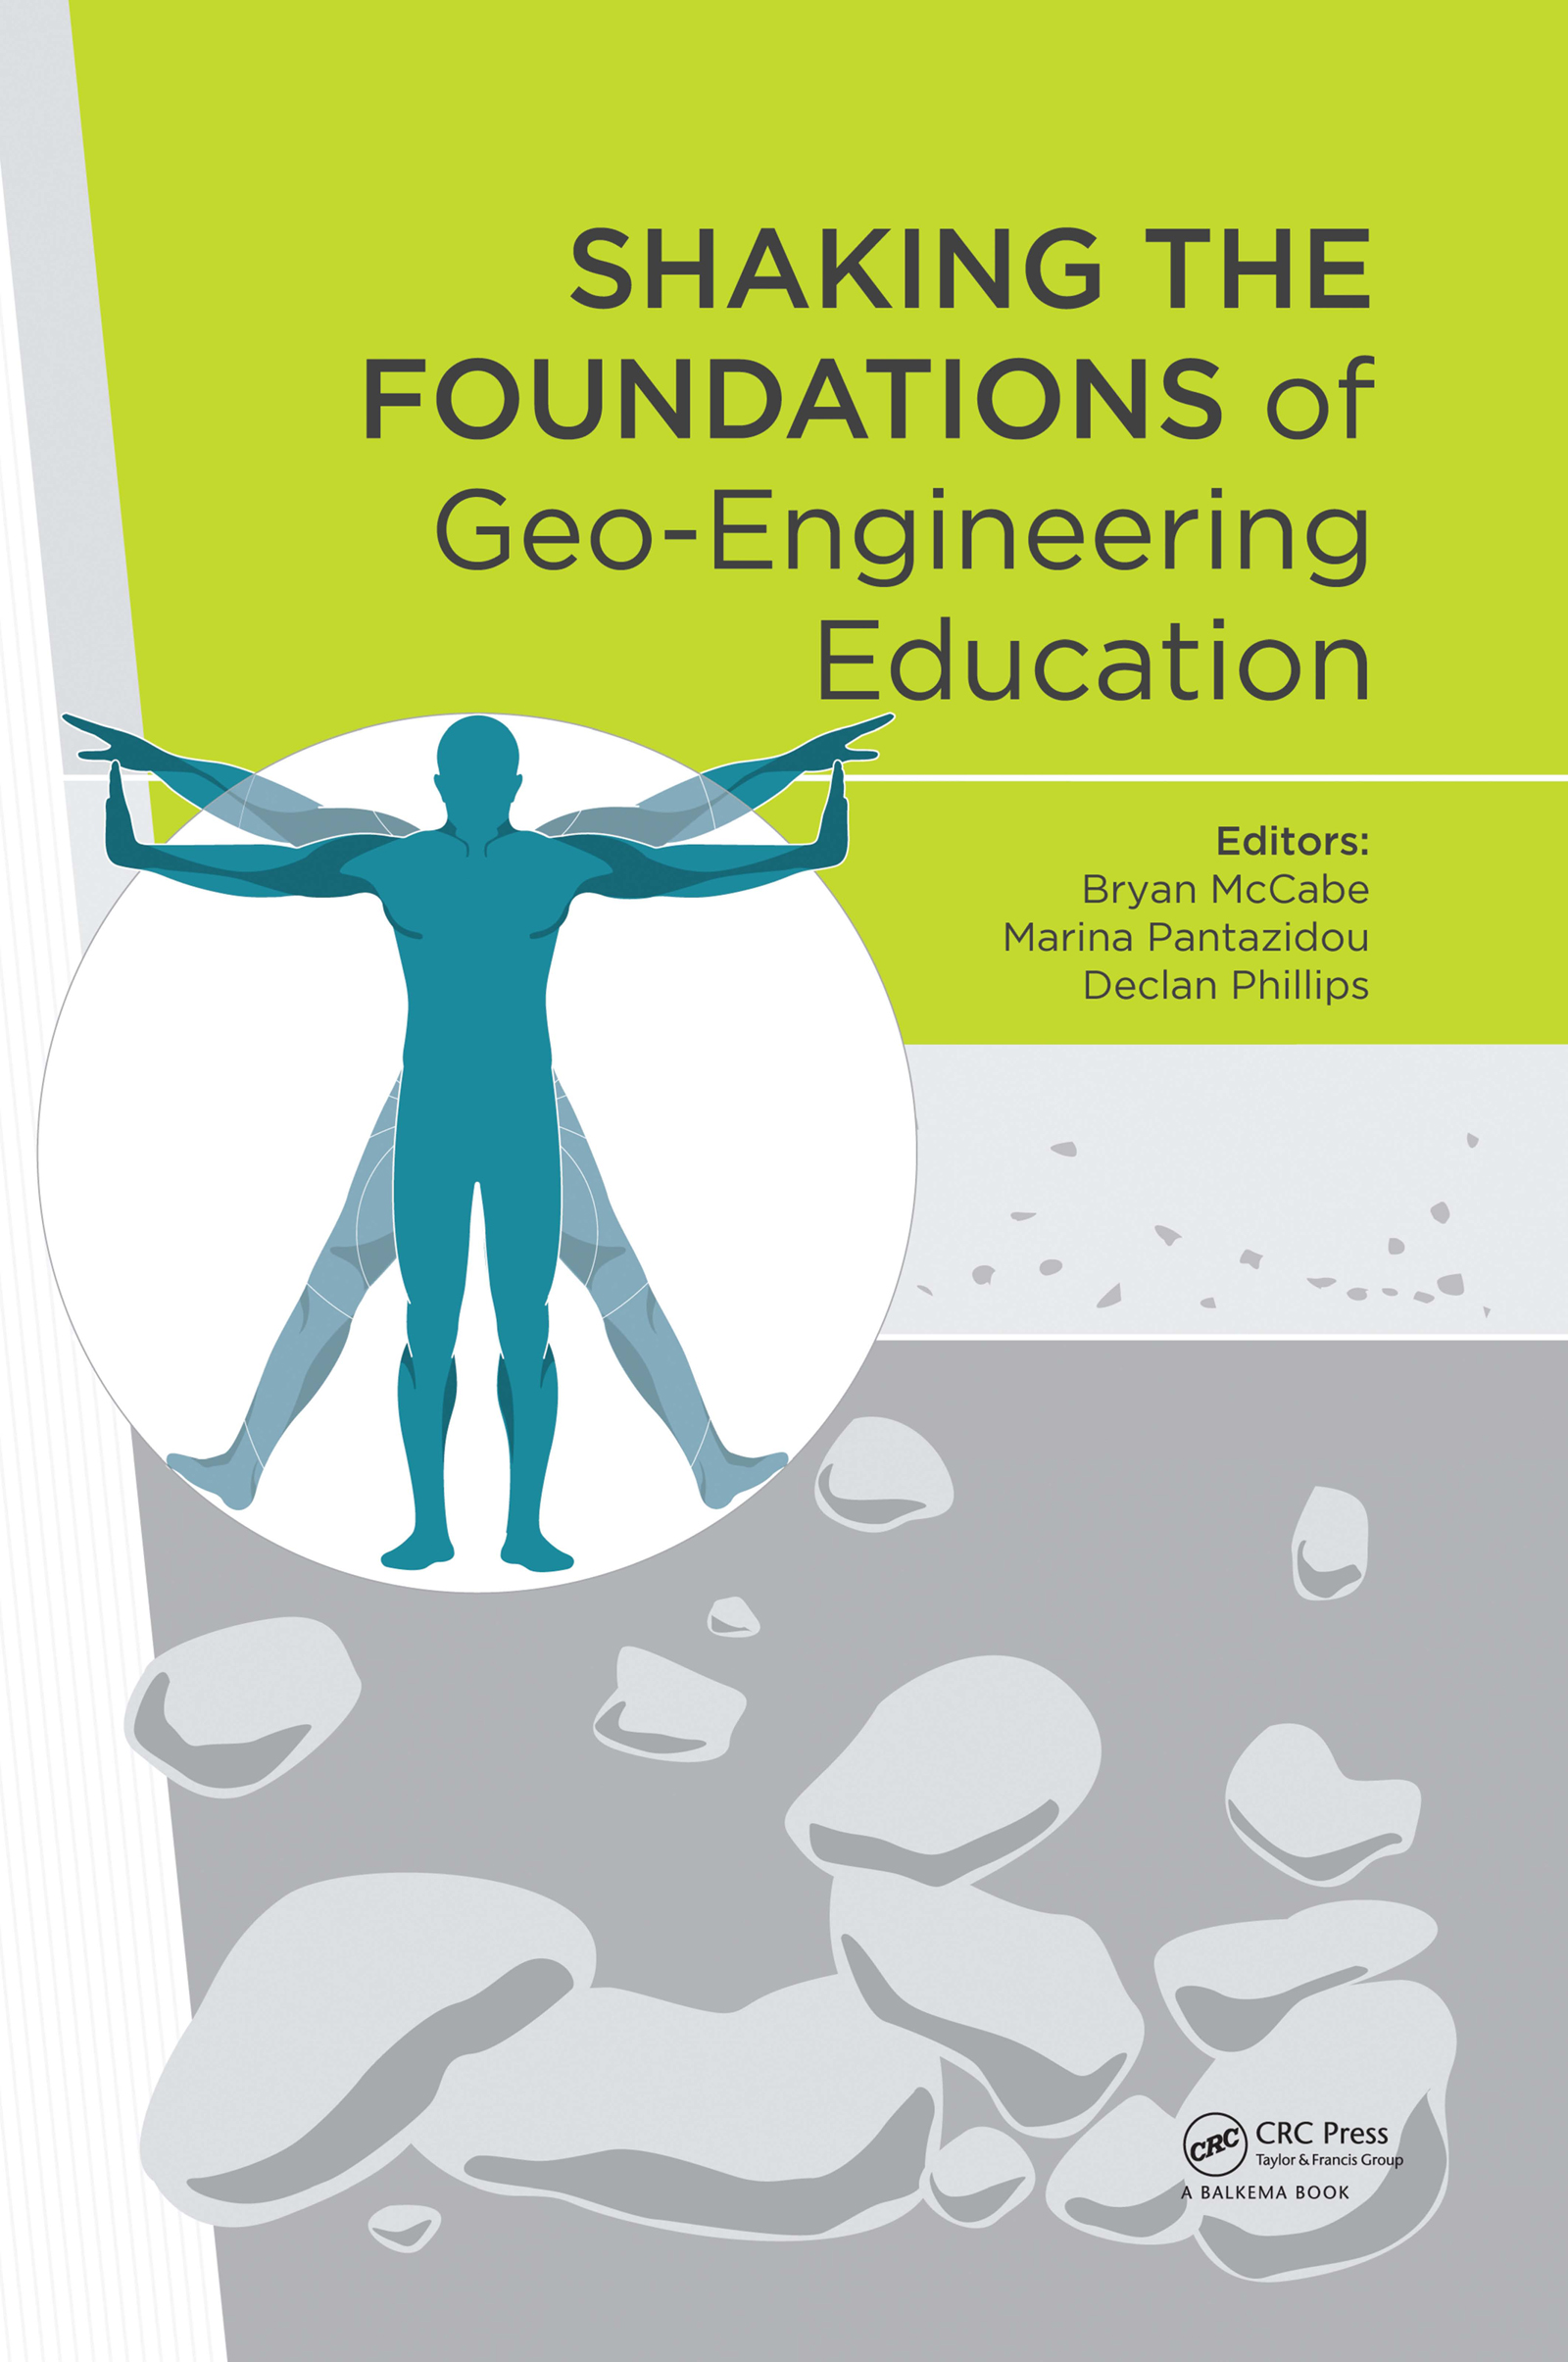 Shaking the Foundations of Geo-engineering Education (Pack - Book and CD) book cover